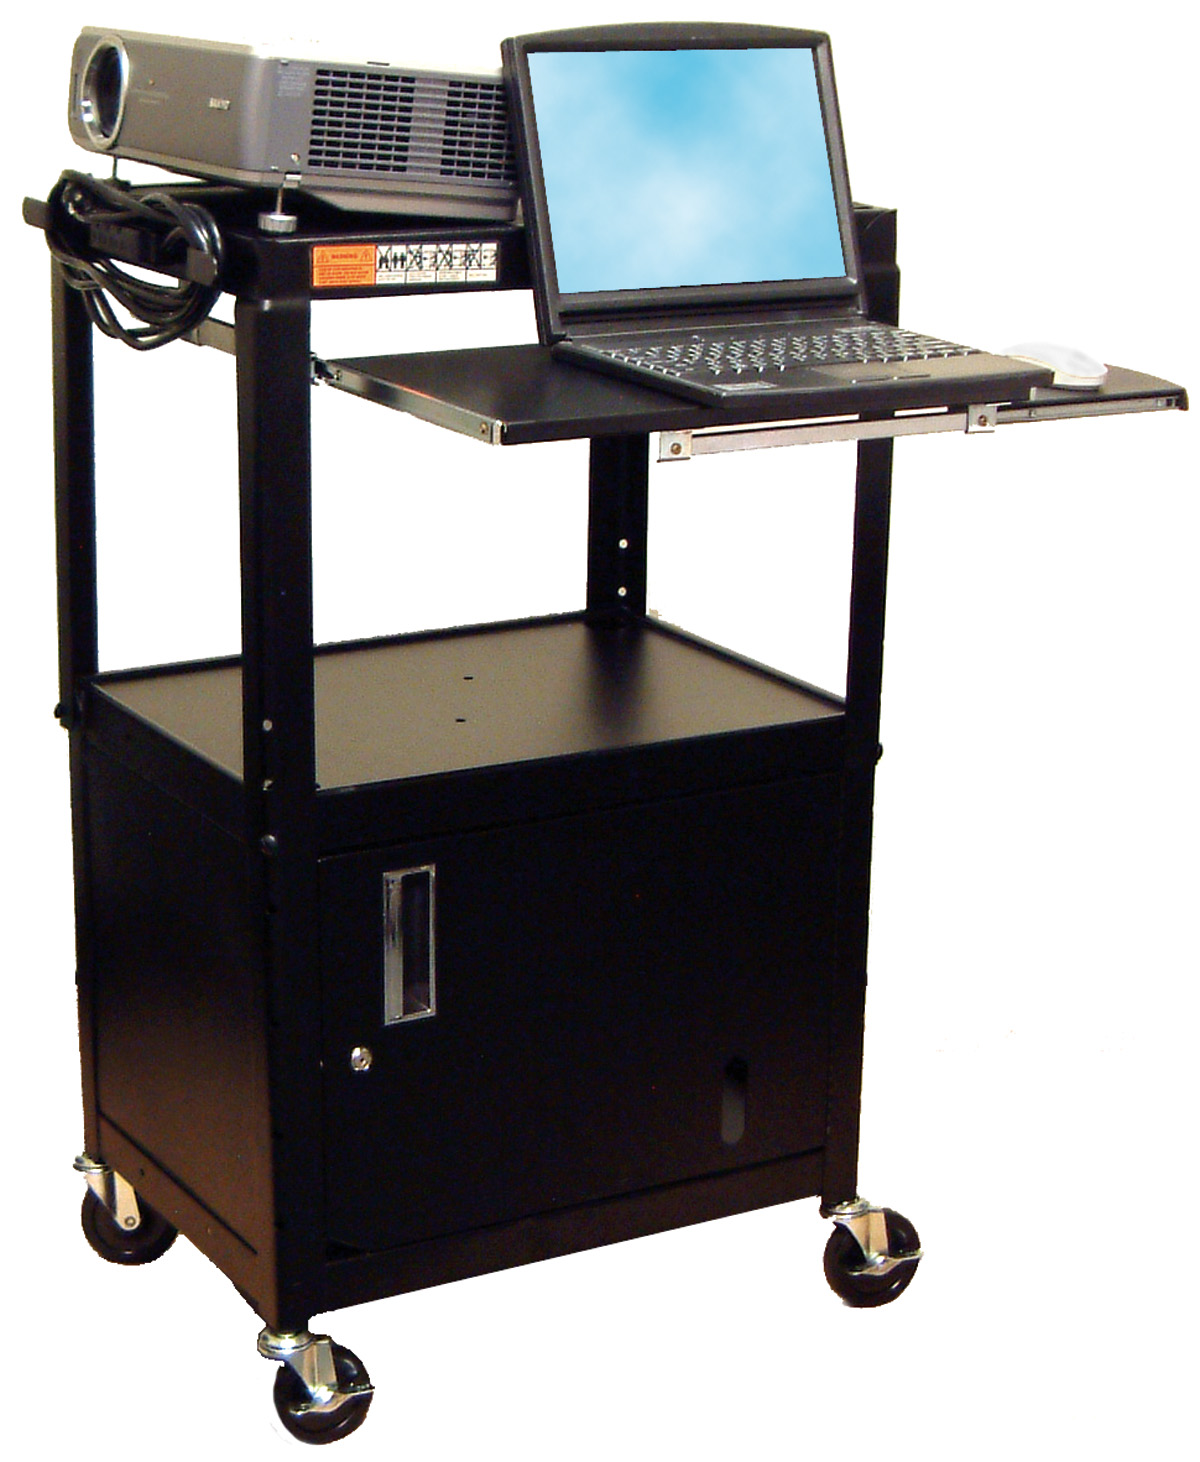 "Picture of Luxor AVJ42KBC - Adj.  Ht. Steel 42"" High Cart W/Cabinet & Pullout Tray - Black"